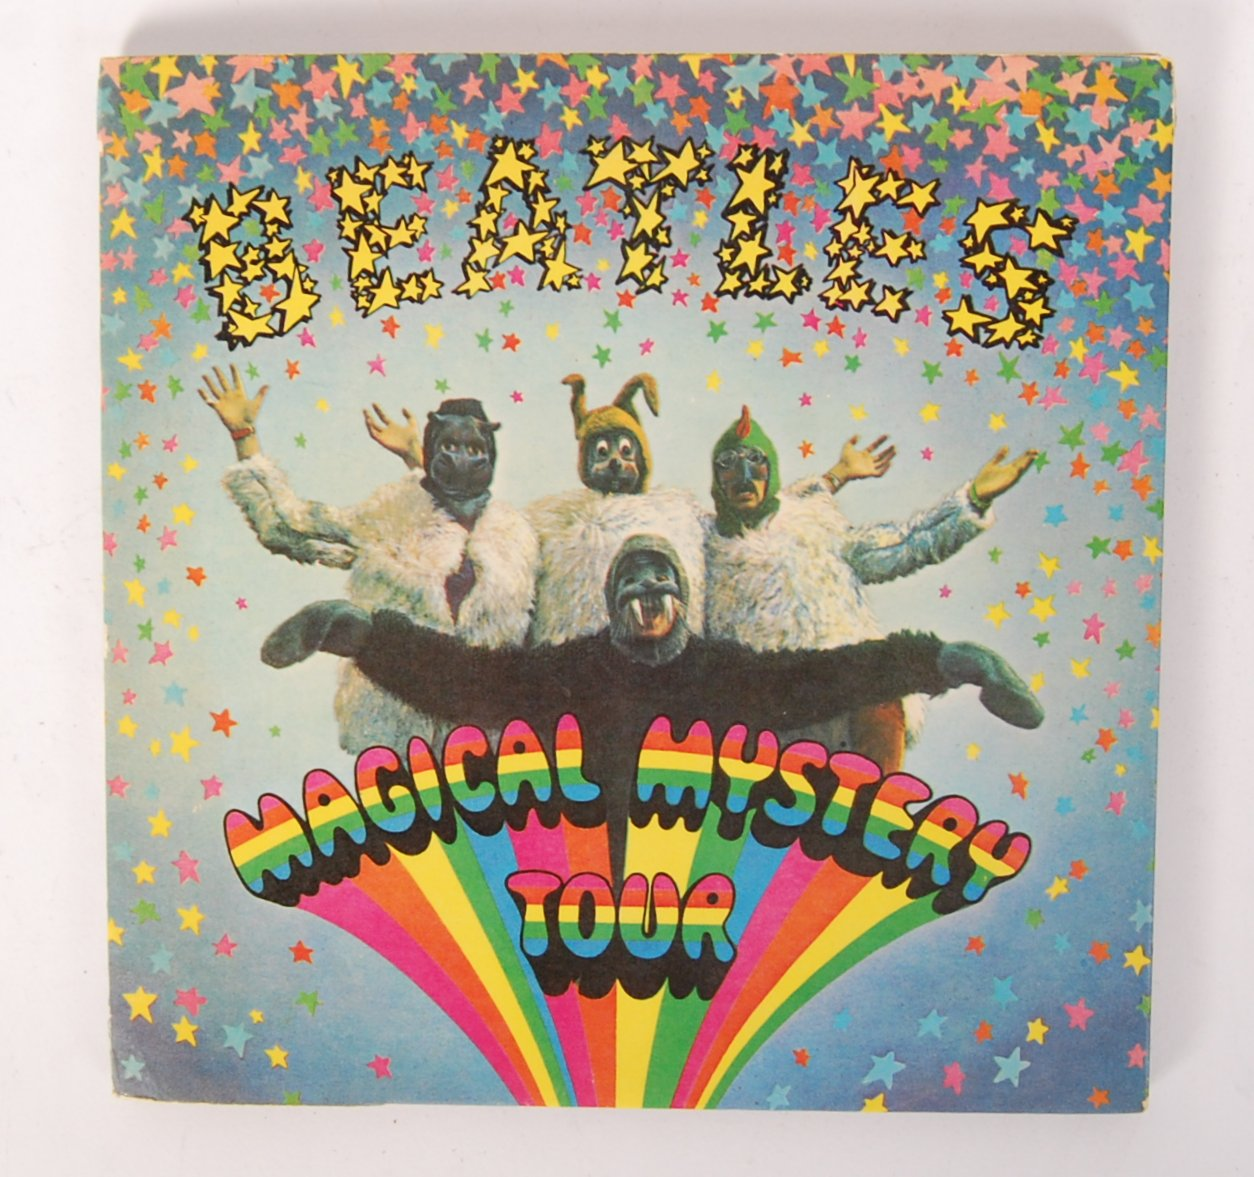 Lot 30 - AUTOGRAPHED 'THE BEATLES' MAGICAL MYSTERY TOUR 45RPM RECORD